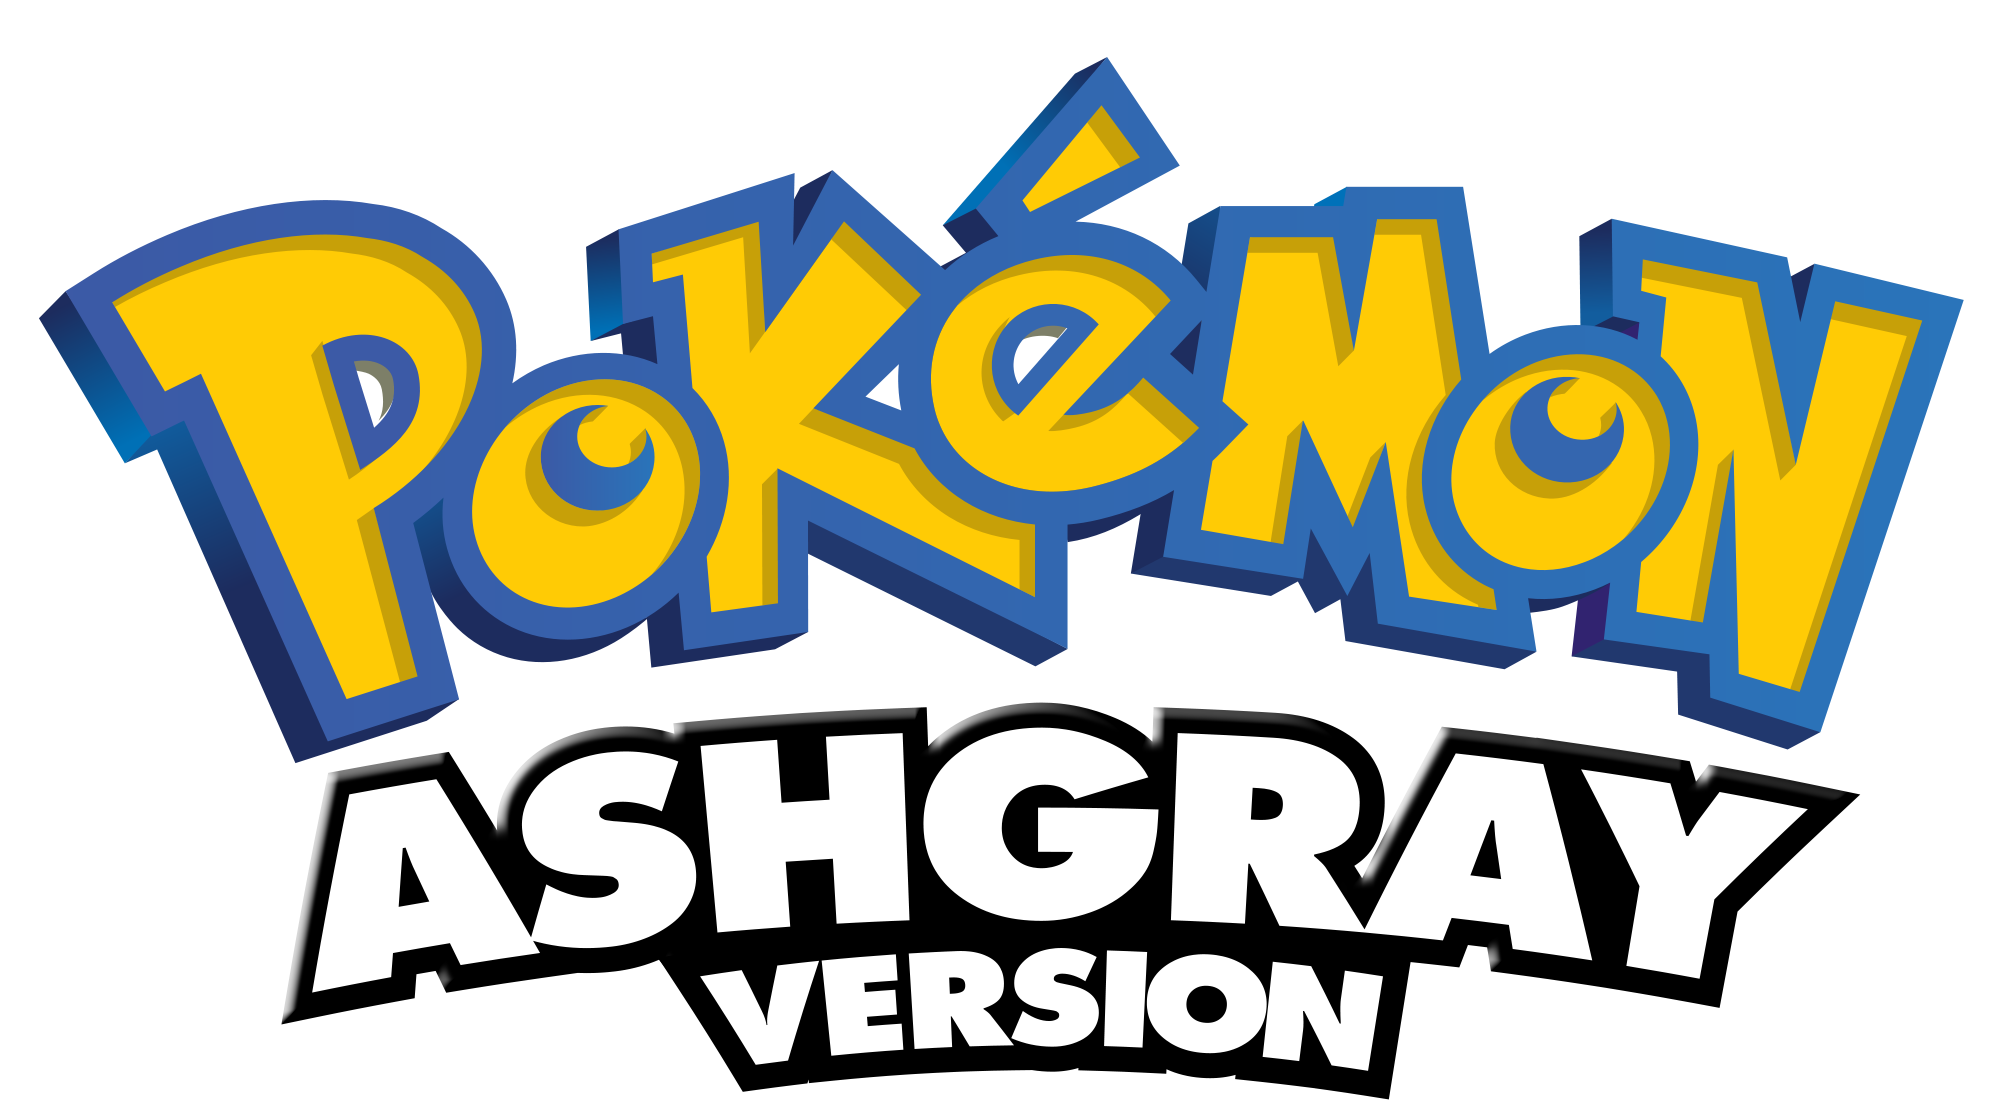 pokemon ashgray fan logo #1442